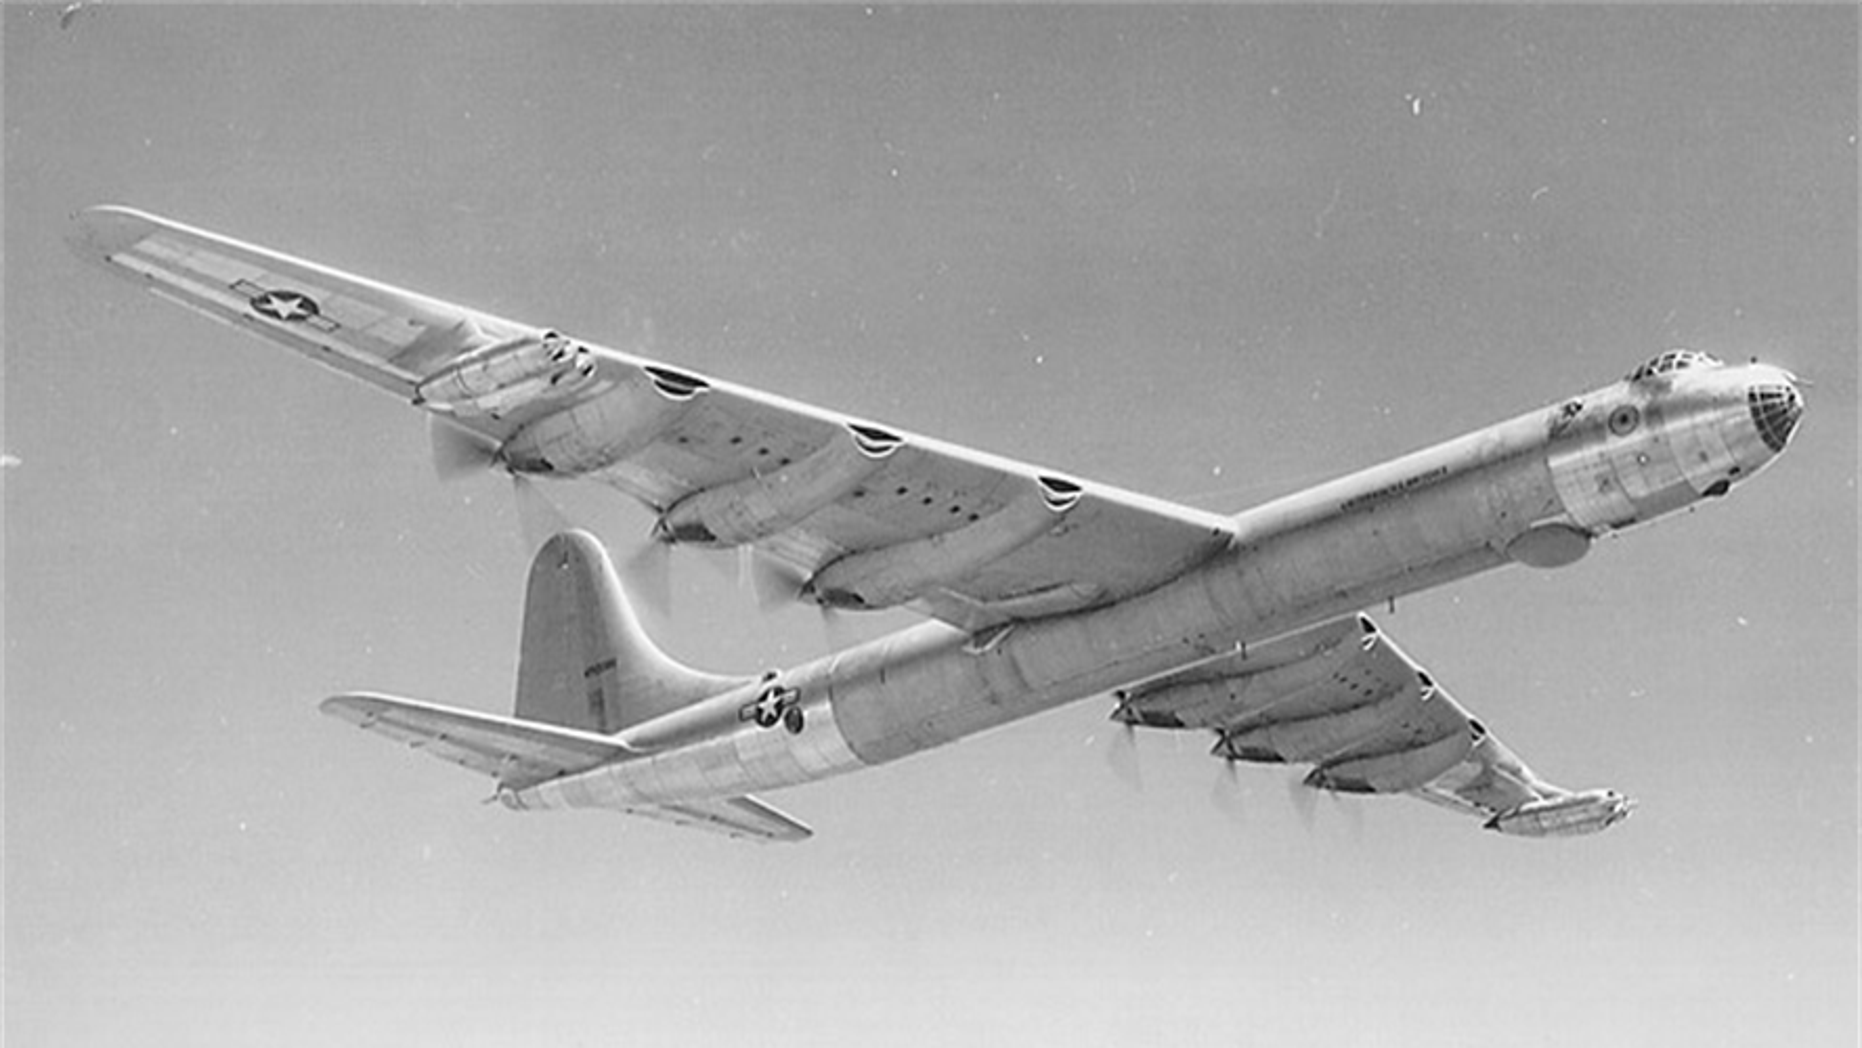 File photo - 1950's B-36 Peacemaker (U.S. Air Force photo)